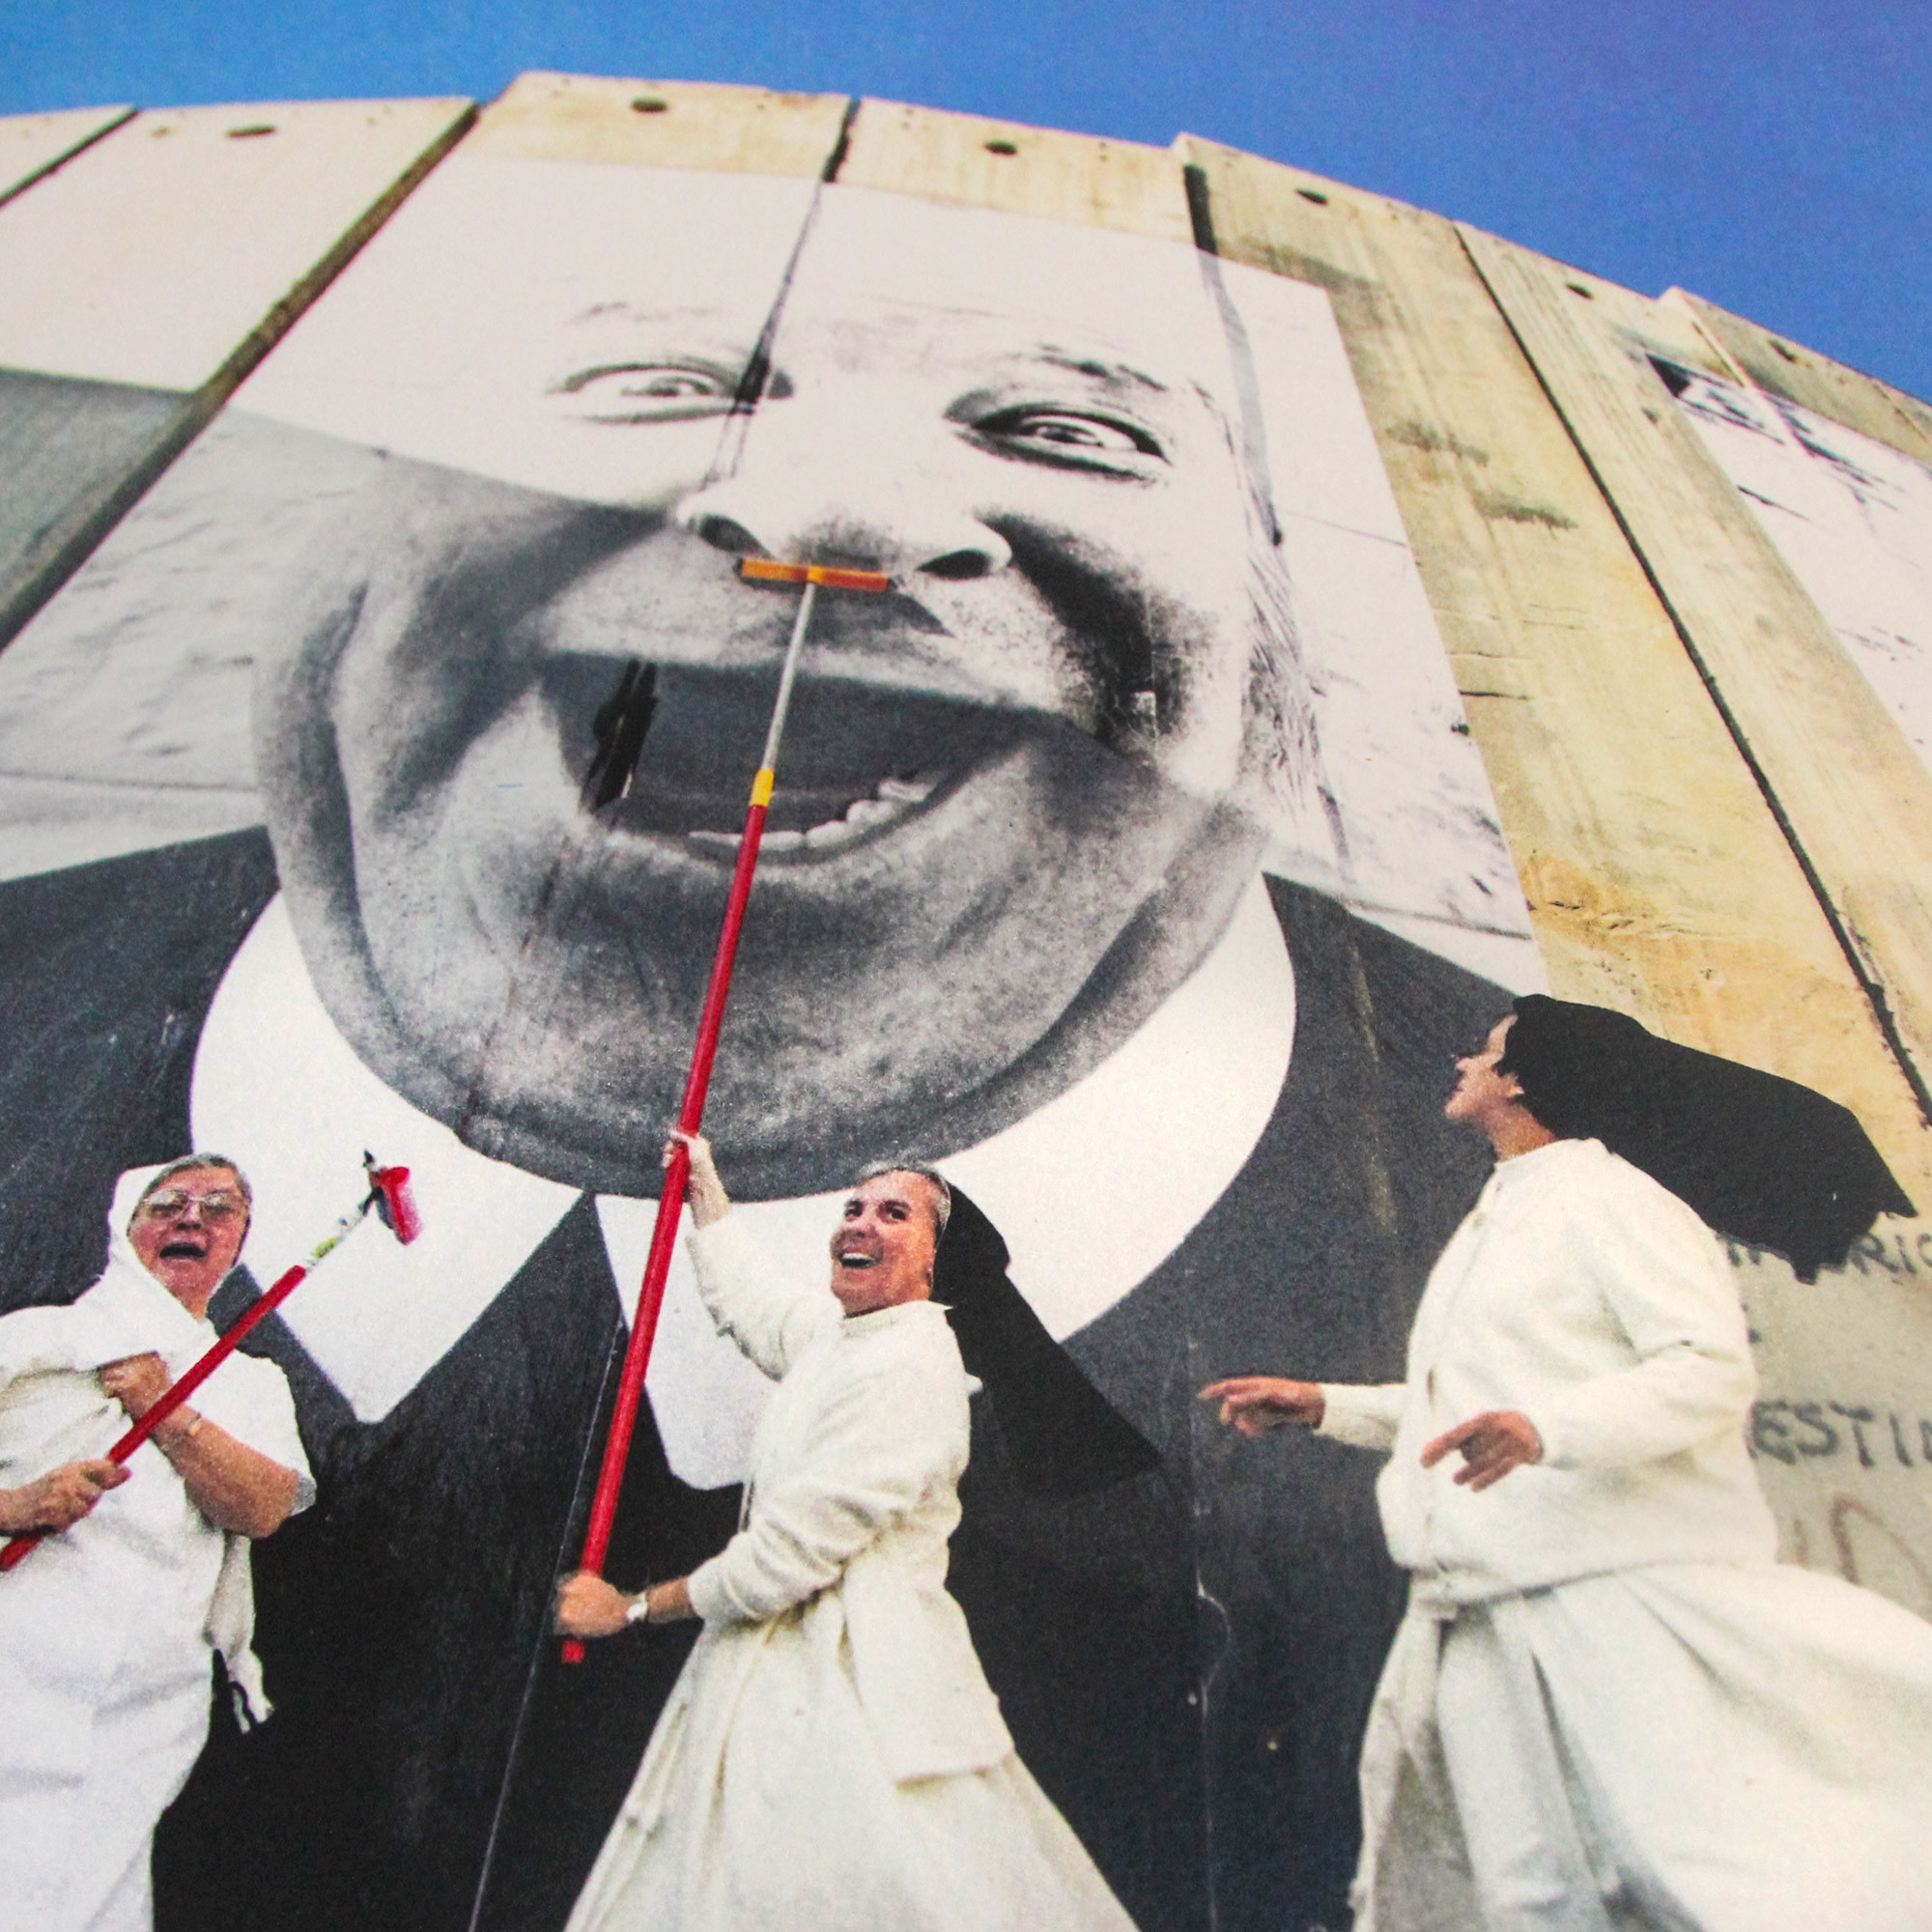 28 Millimètres, Face 2 Face, Nuns in action, separation wall, security fence, Palestinian side, Bethlehem, 2007